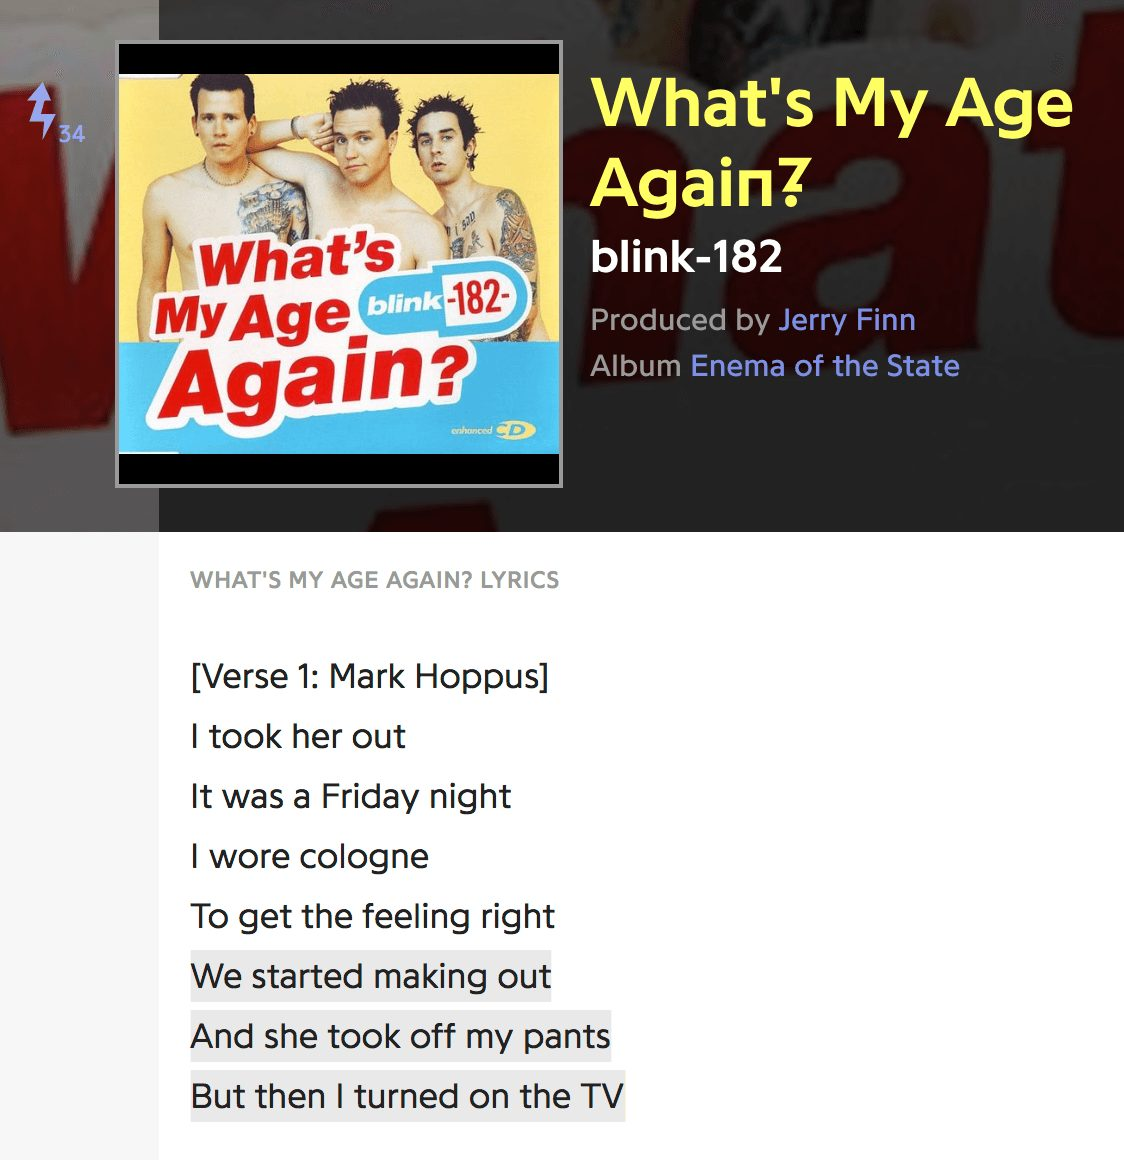 blink 182 whats my age again lyrics